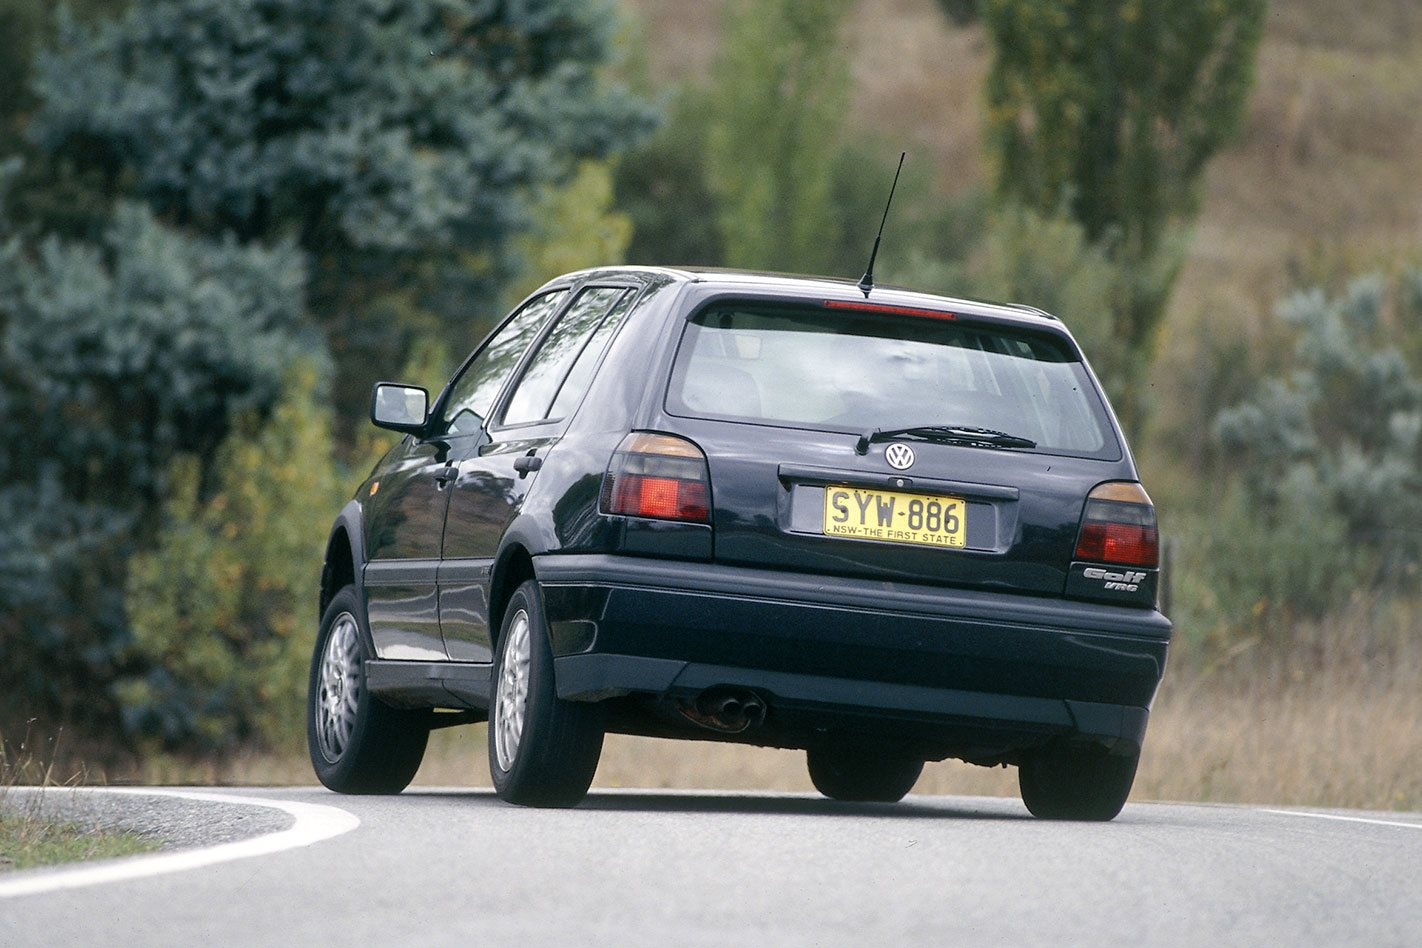 hight resolution of the vr6 s front drive platform was tied down more firmly than a conventional golf as a means of making it handle better which it did as well as accounting